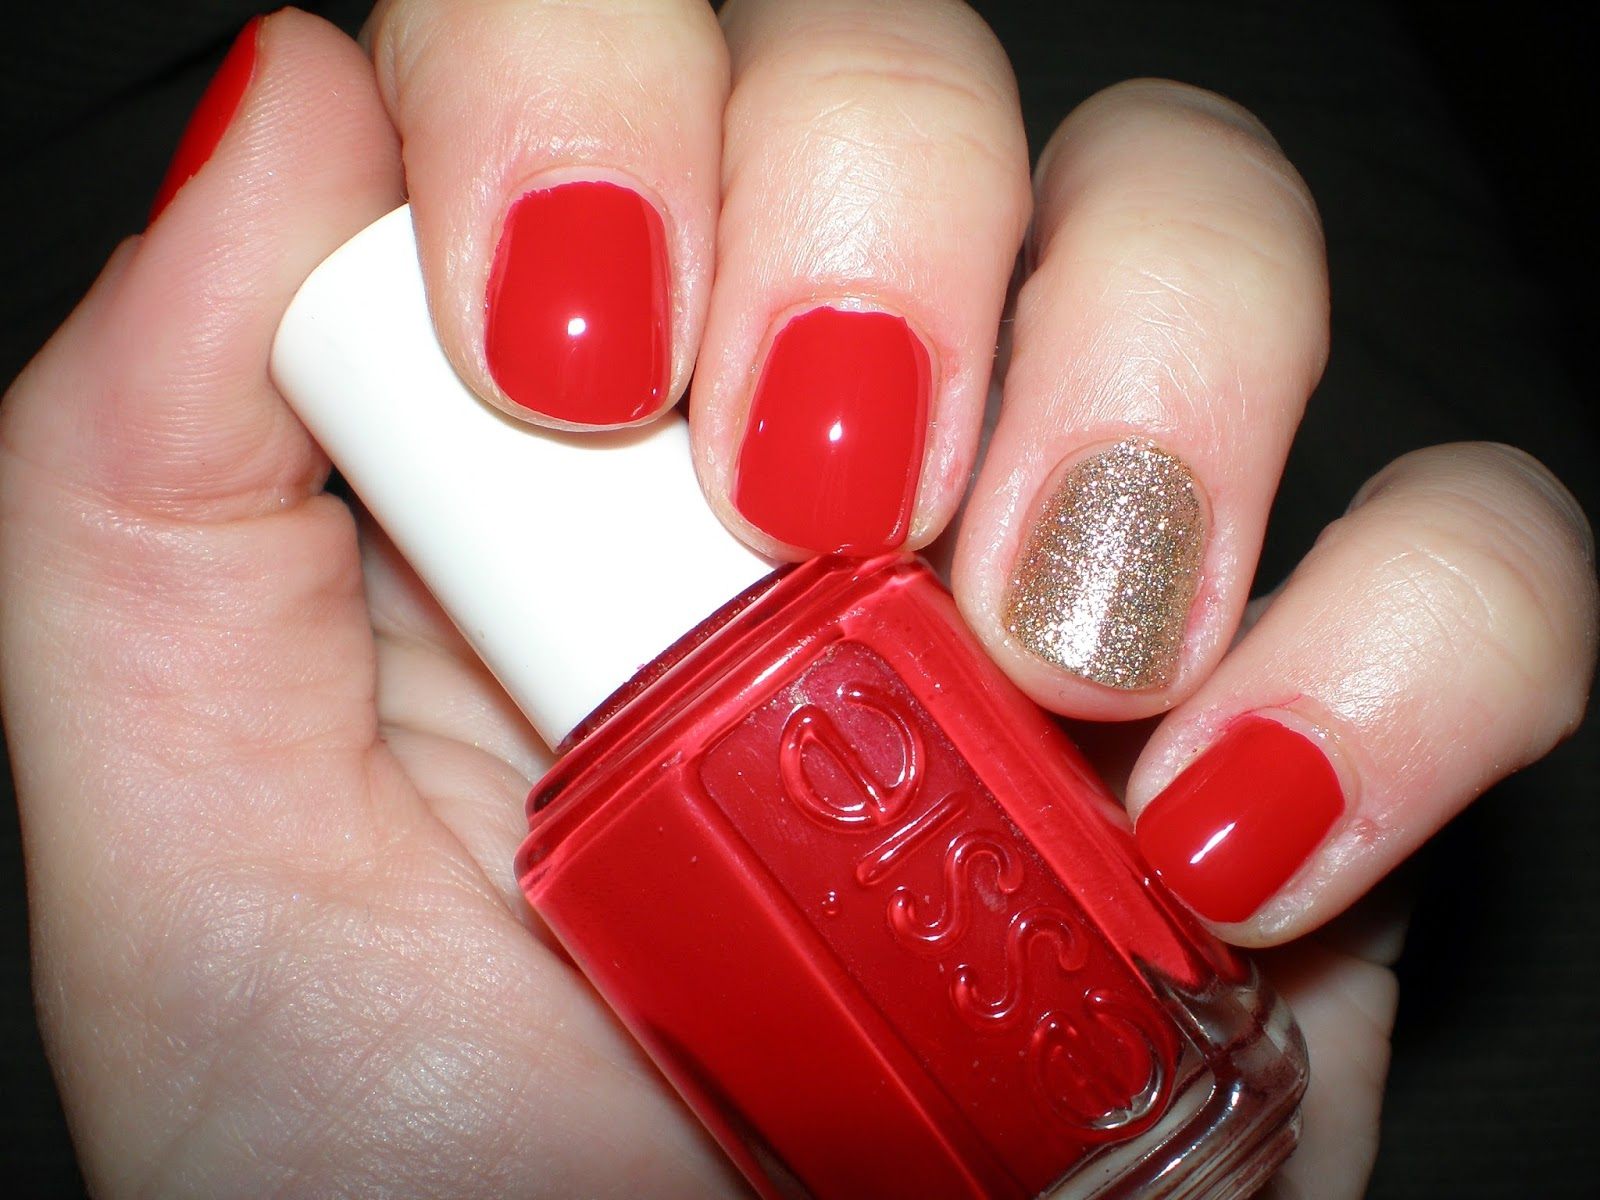 Essie nail polish in Pouf Daddy